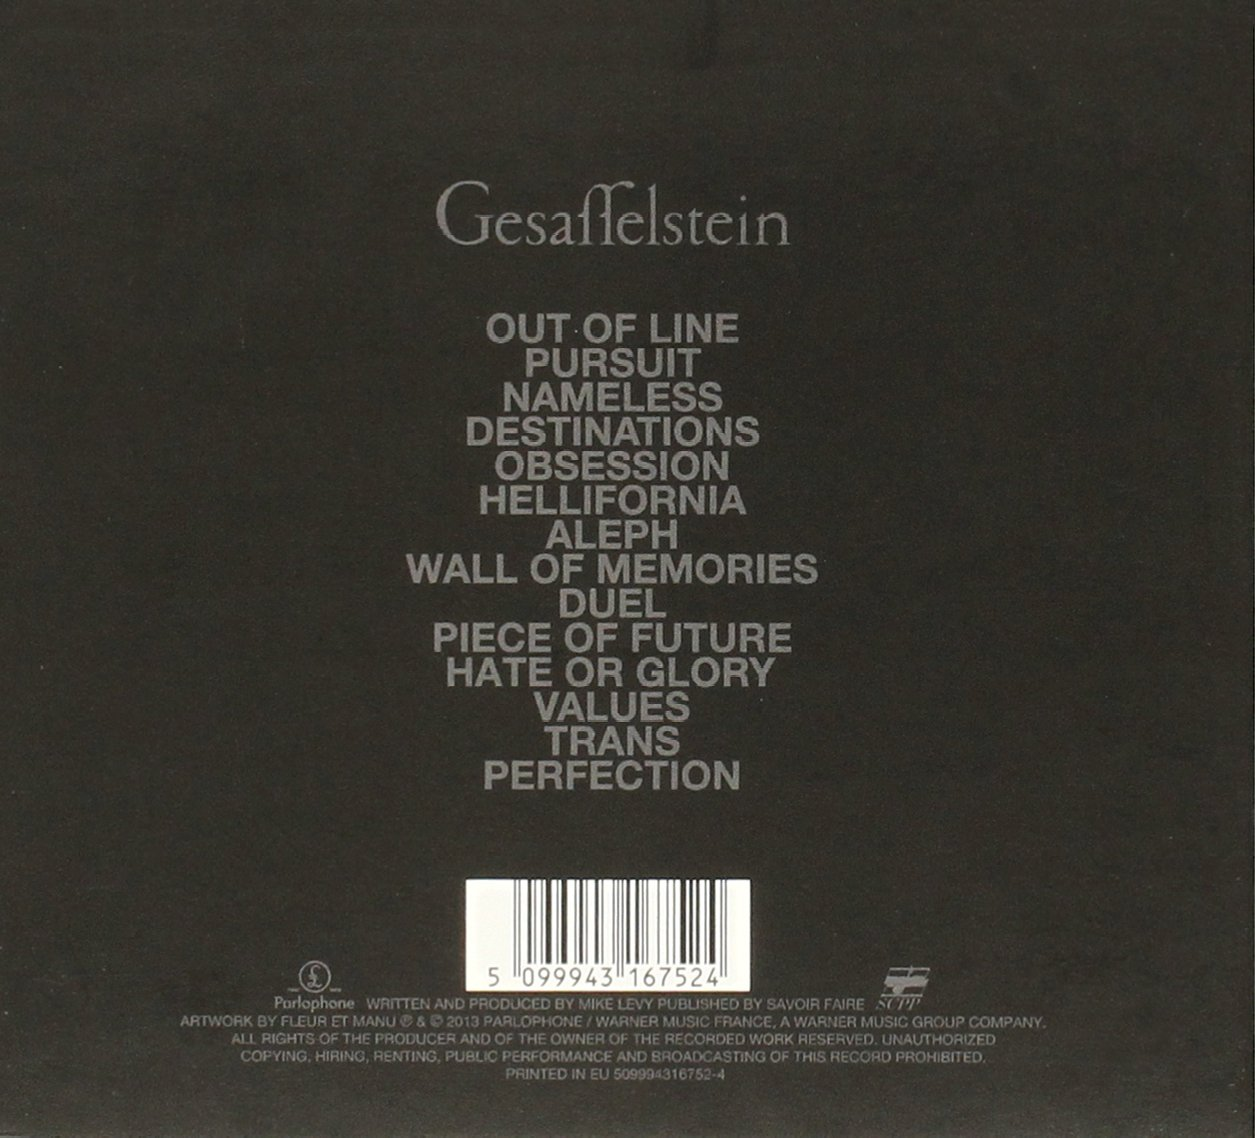 Aleph By Gesaffelstein Music 3 Power Supply Pictures To Pin On Pinterest